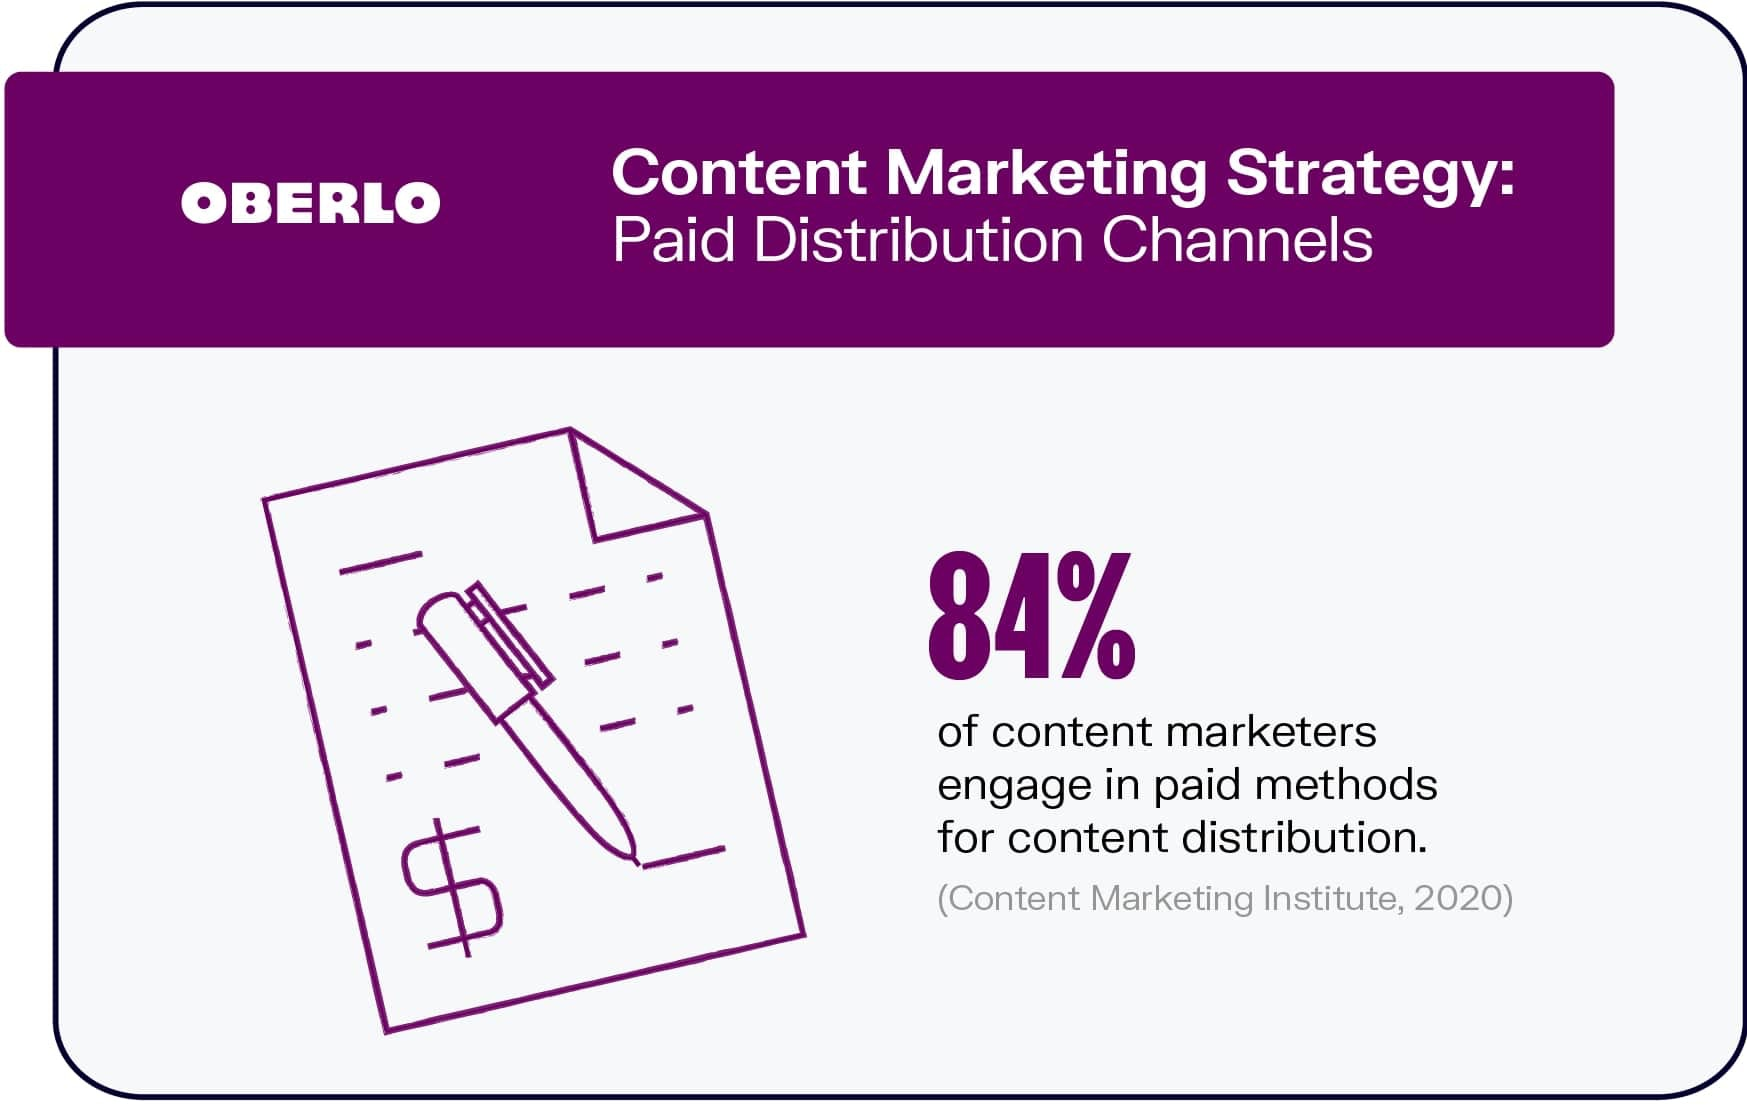 Content Marketing Strategy: Paid Distribution Channels